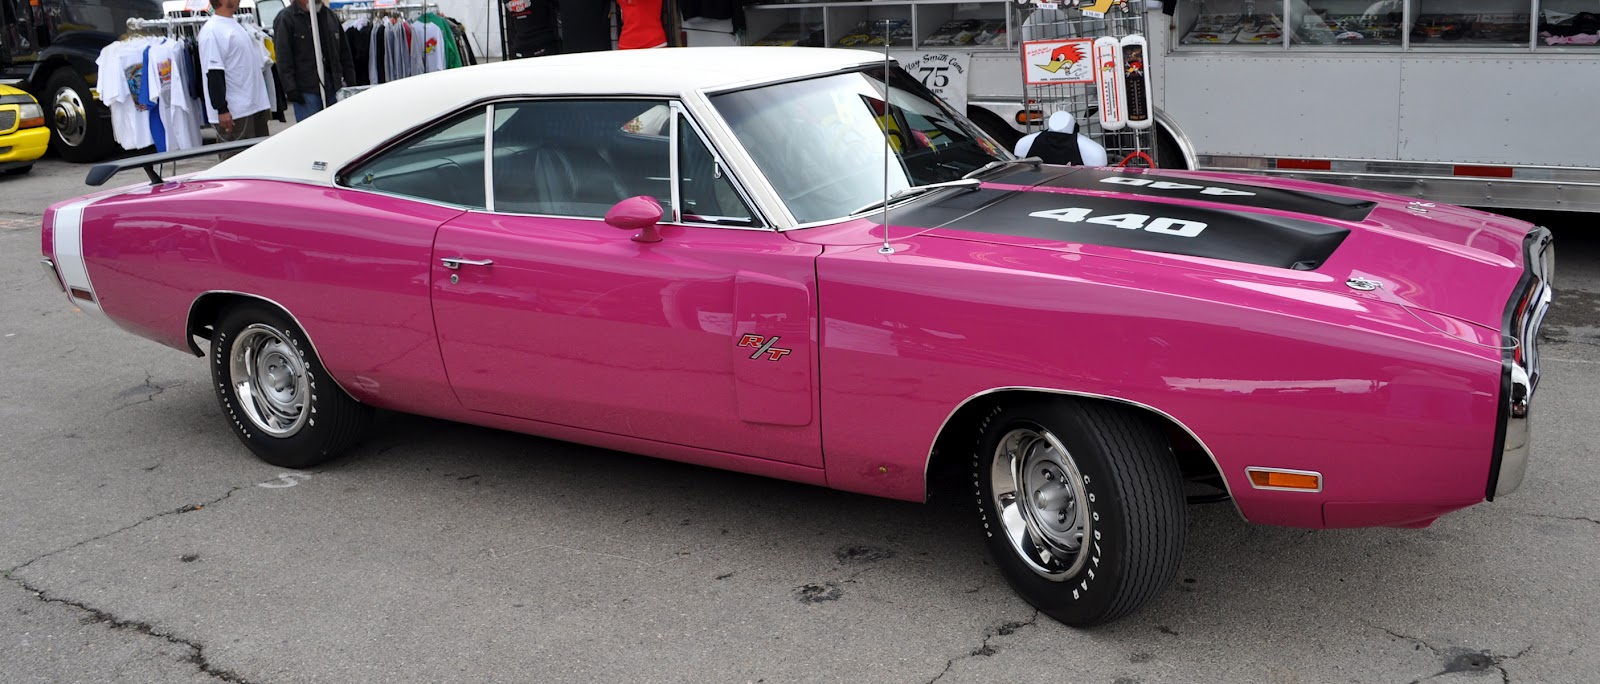 Just A Car Guy Pink Mopars The Only Pink Musclecar Probably Yes I Know That Chrysler